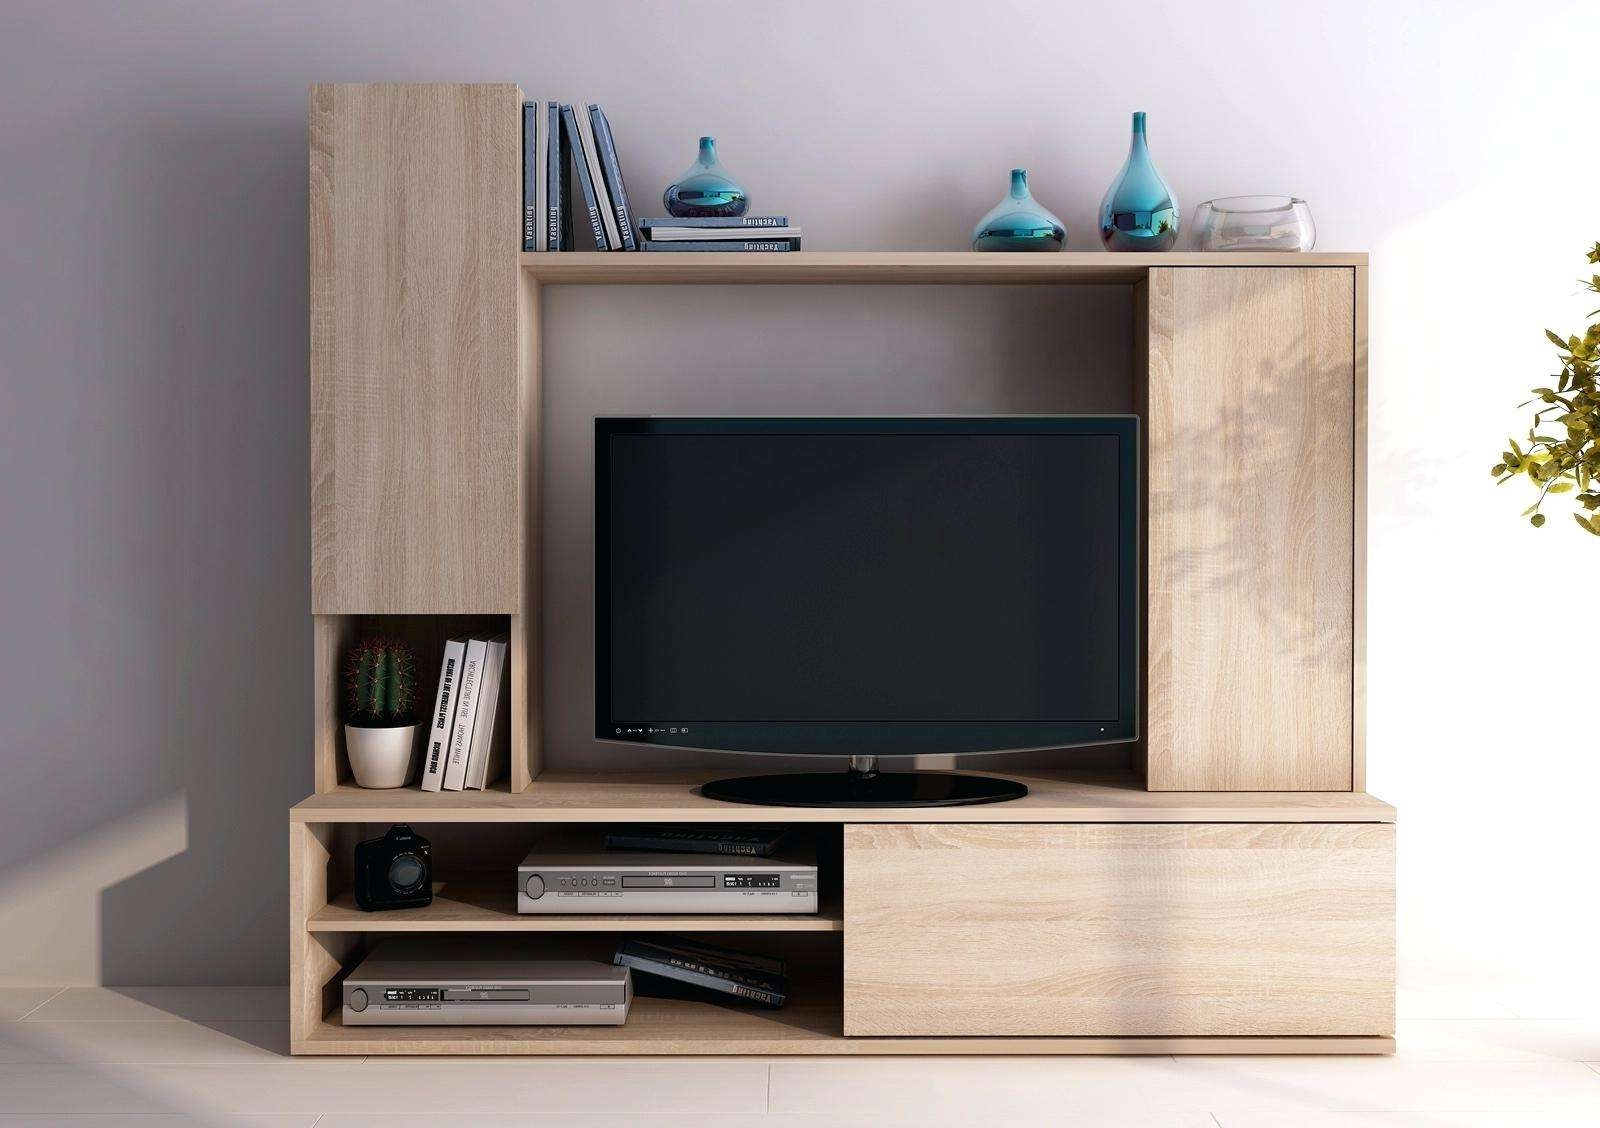 Modular Tv Stands Furniture Tv Stands Target Australia – Babybasics With Modular Tv Stands Furniture (View 9 of 15)